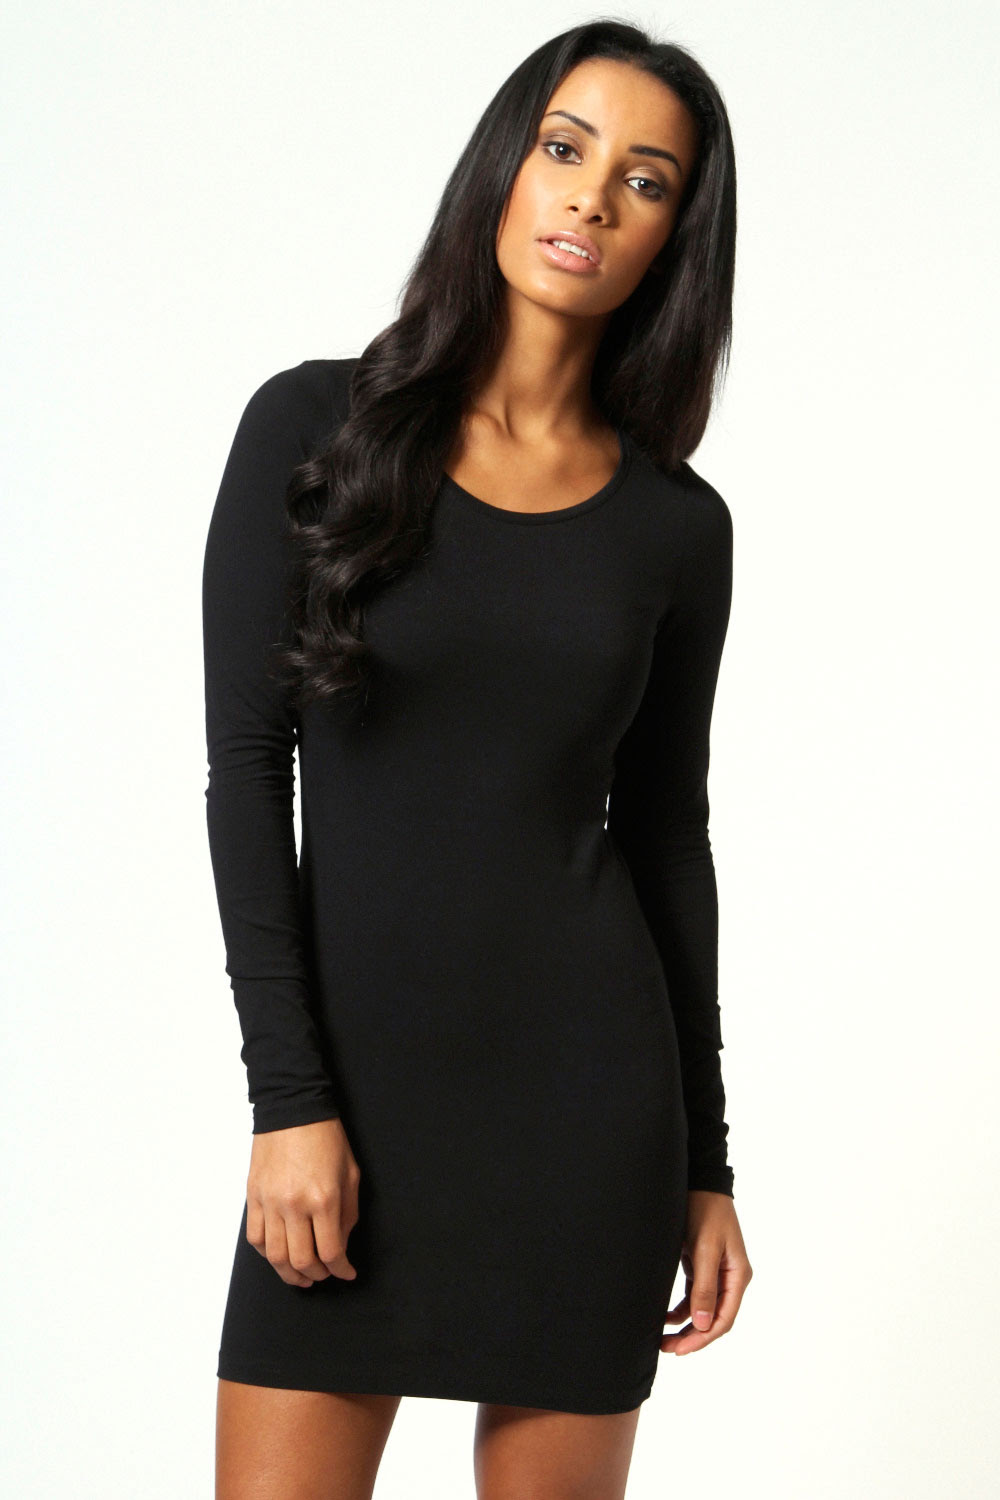 Online shopping sleeve with bodycon black chocker long dress catalogs plus size